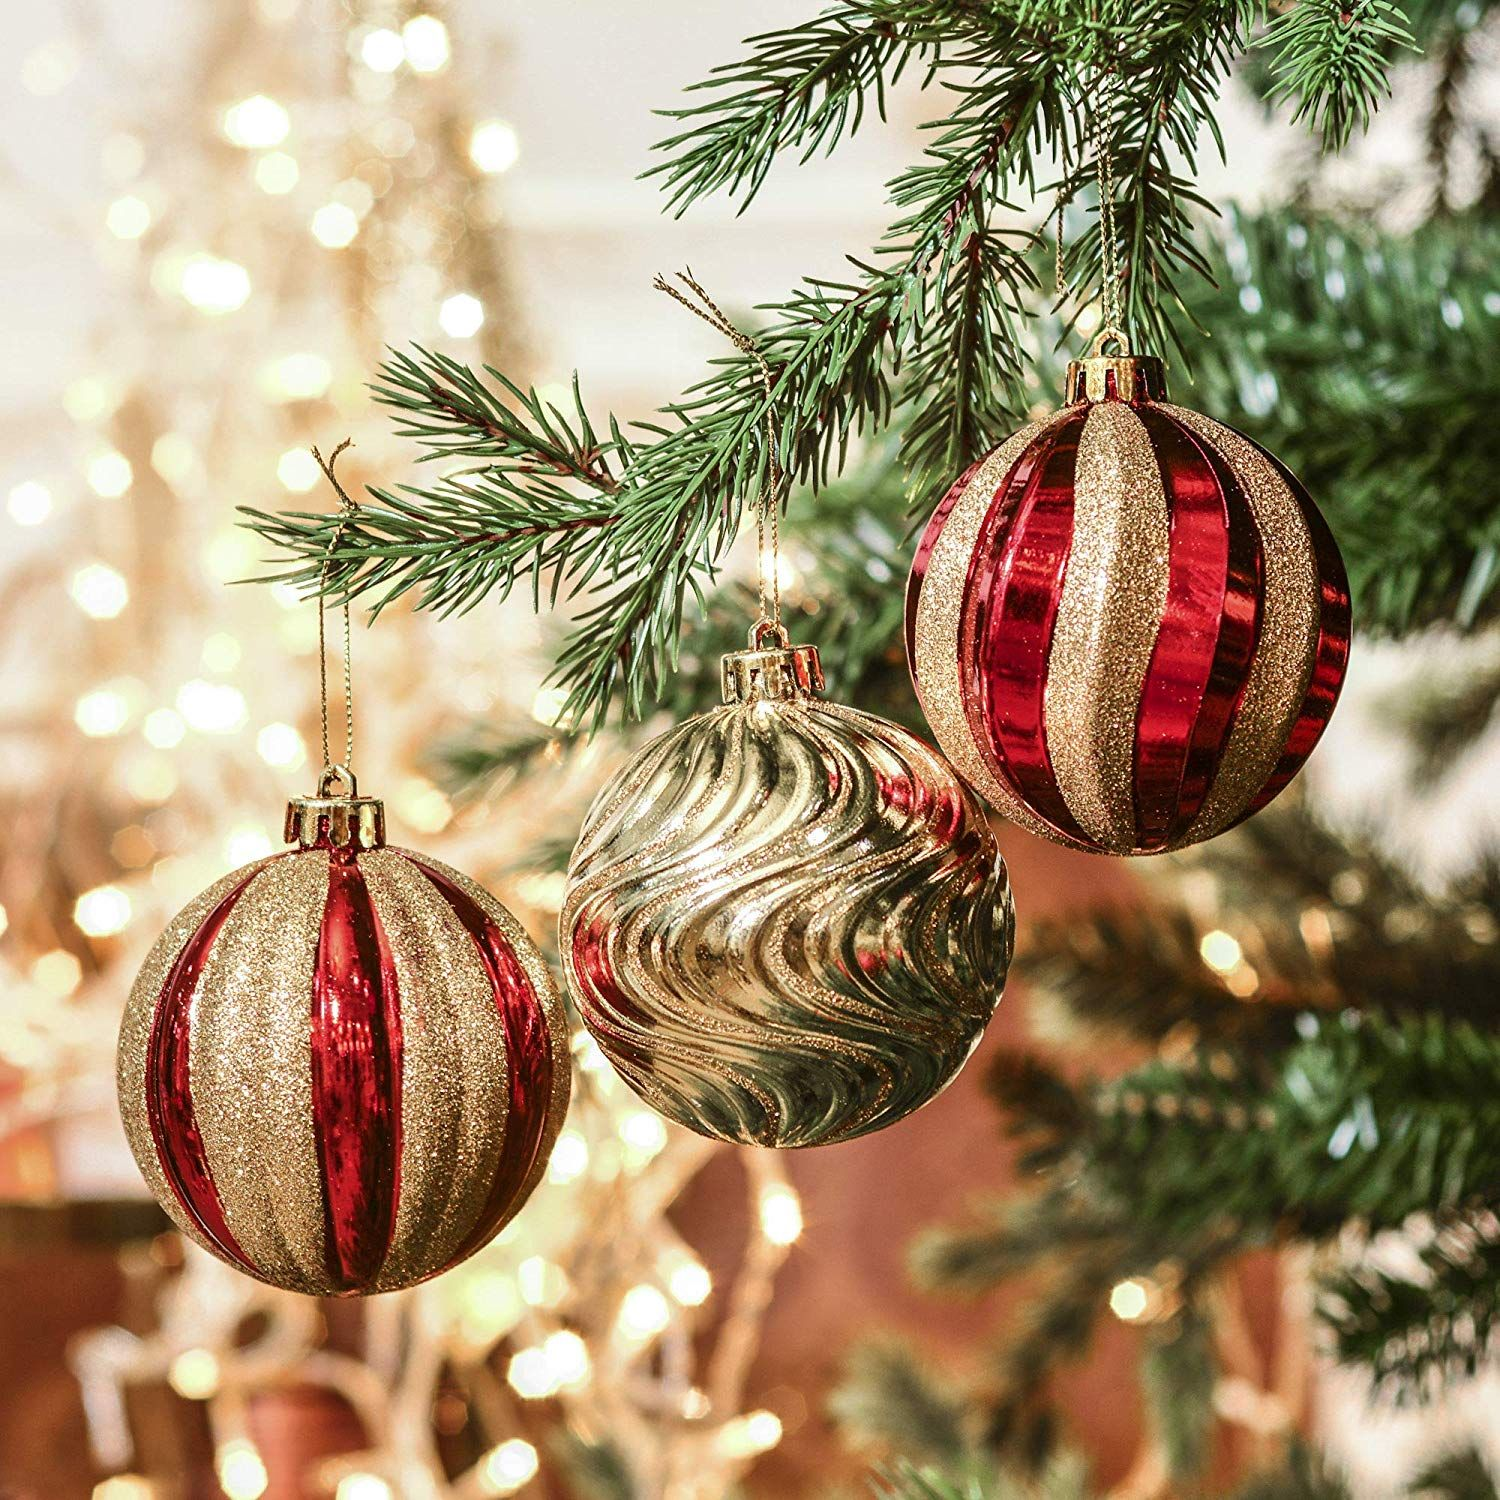 Valery Madelyn 40ct Luxury Shatterproof Christmas Ball Ornaments Decoration Red Ornament Decor Classic Christmas Decorations Christmas Decorations For The Home